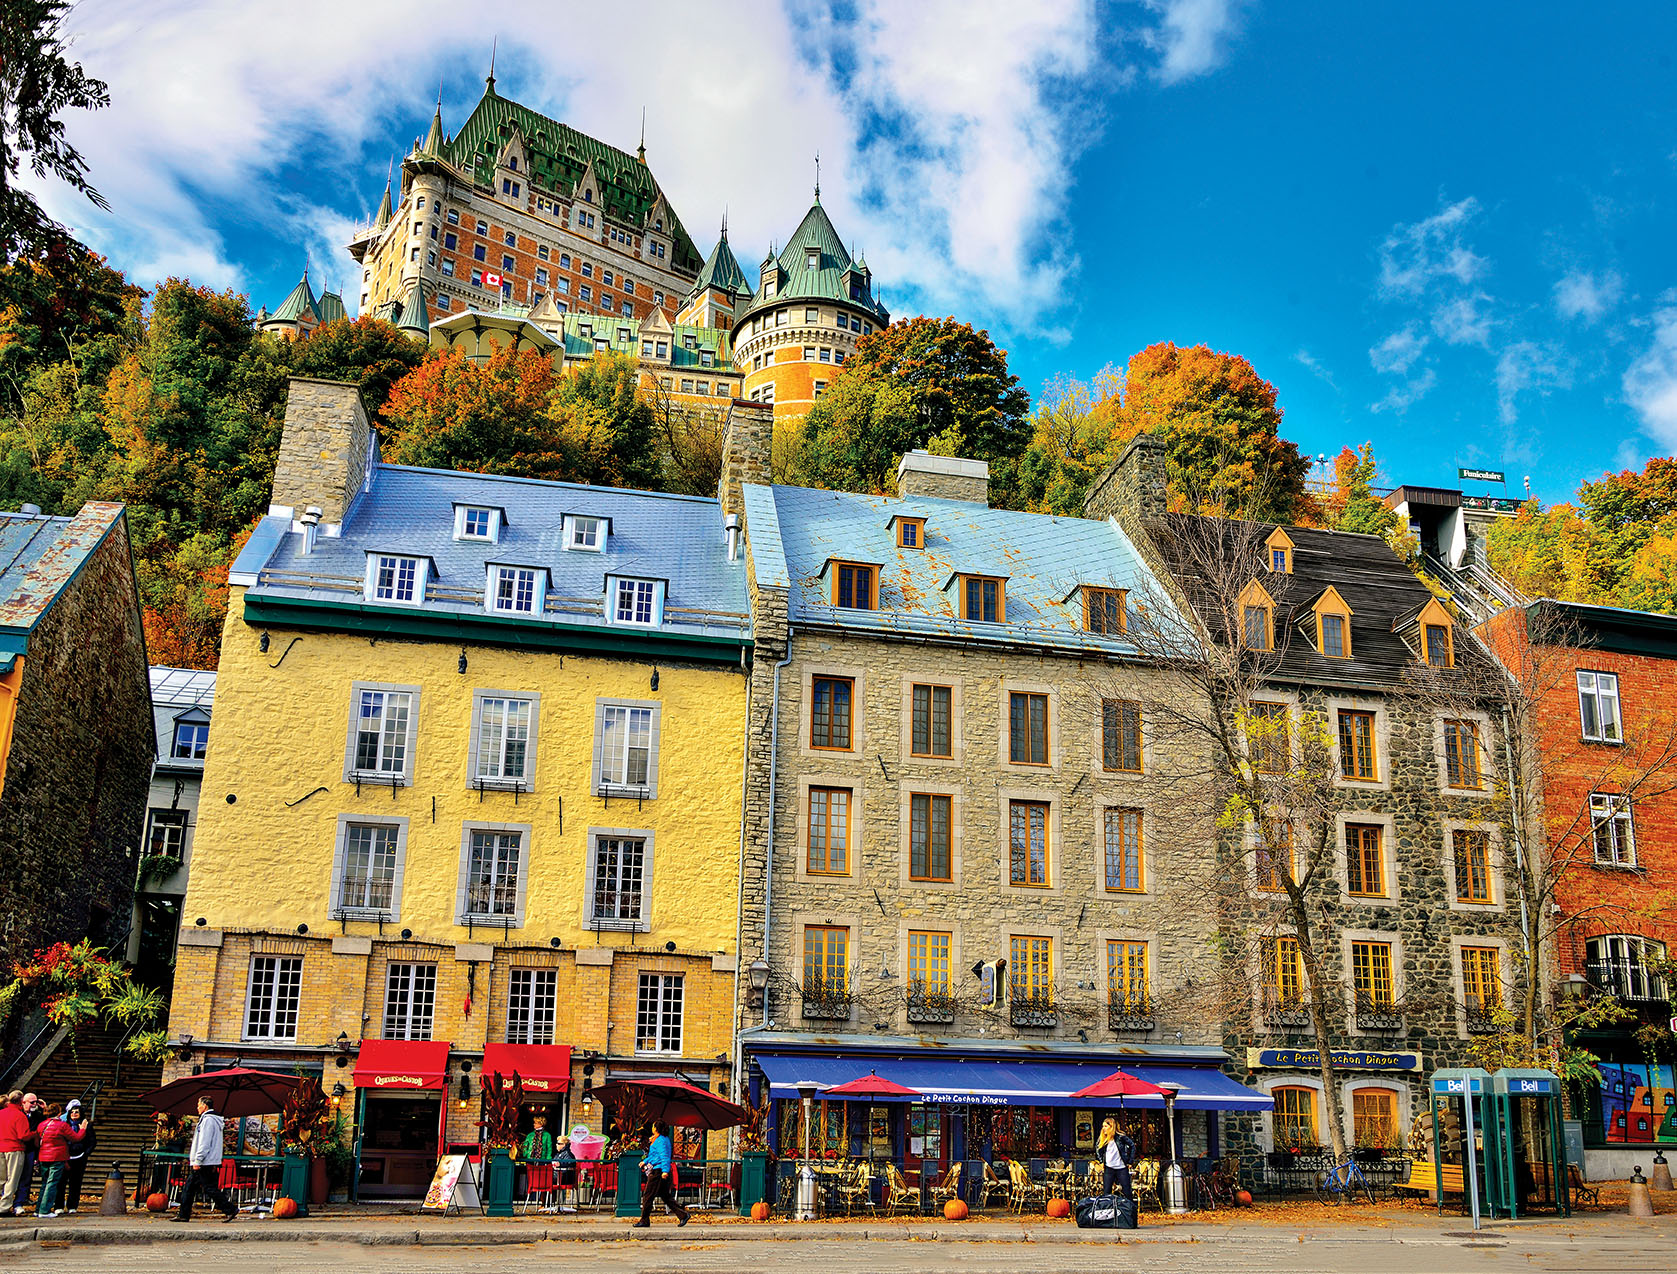 Restaurants in the Lower Town of Vieux Quebec with View of Hotel Fairmont Le Chateau Frontenac, Quebec City, Province of Quebec, Canada